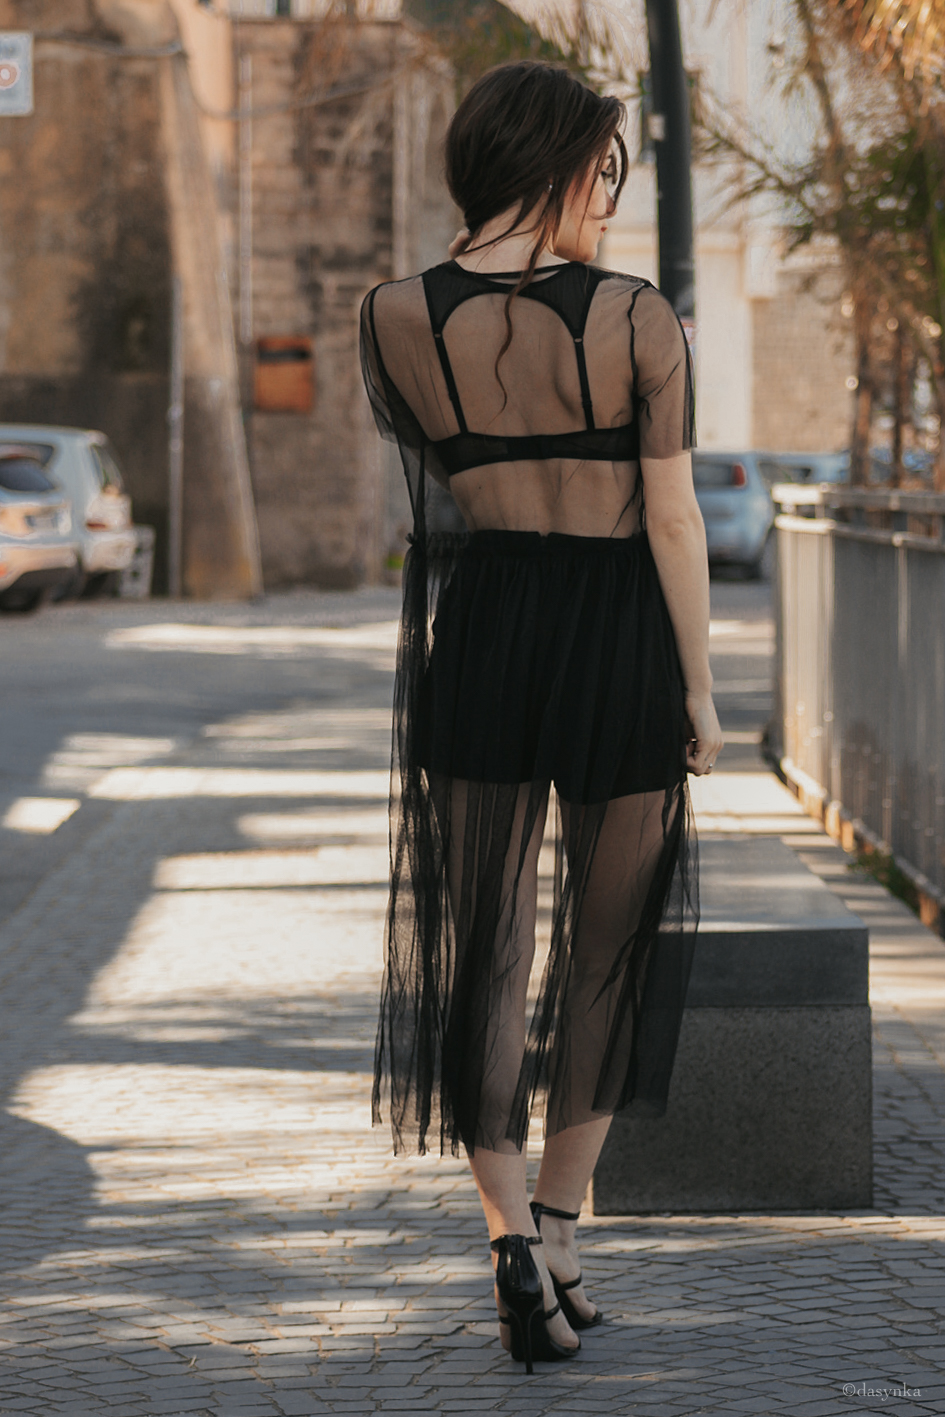 dasynka-fashion-blog-blogger-influencer-inspiration-shooting-model-globettrotter-travel-girl-lookbook-instagram-long-hair-street-style-casual-italy-lifestyle-outfit-poses-chiffon-trasparence-dress-bra-lace-high-shorts-black-heels-forever21-glamour-chic-elegant-dress-tee-black-sexy-zara-hm-asos